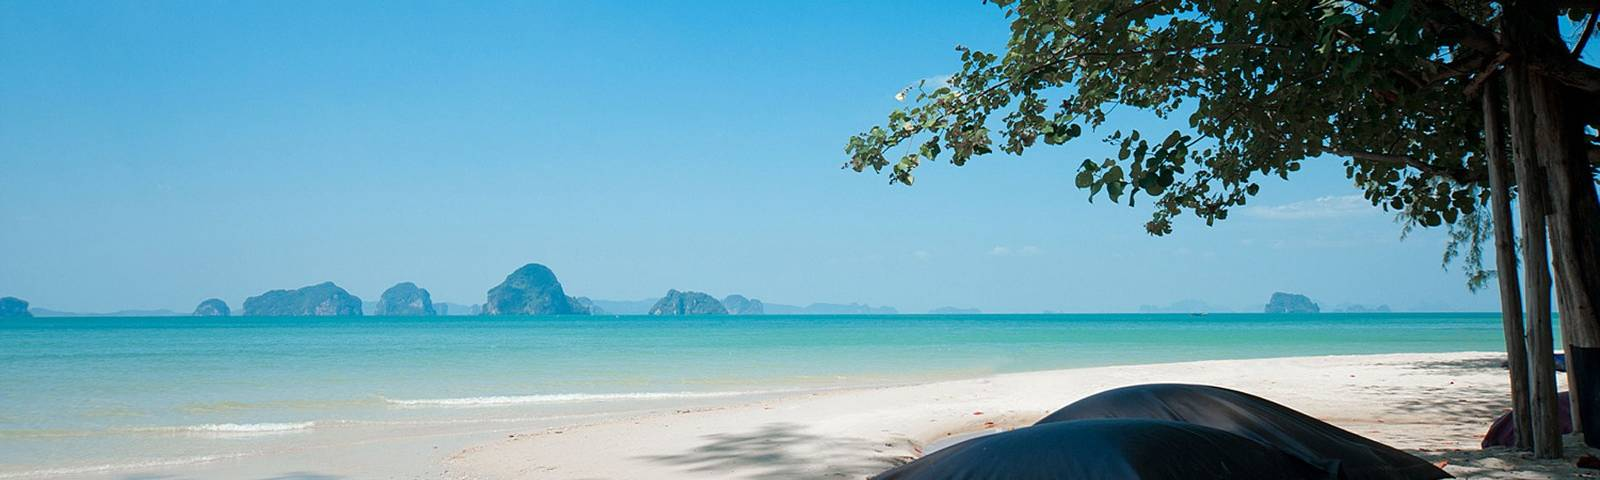 Enchanting Travels -  Thailand Reisen -  Tubkaak Boutique Resort - Strand